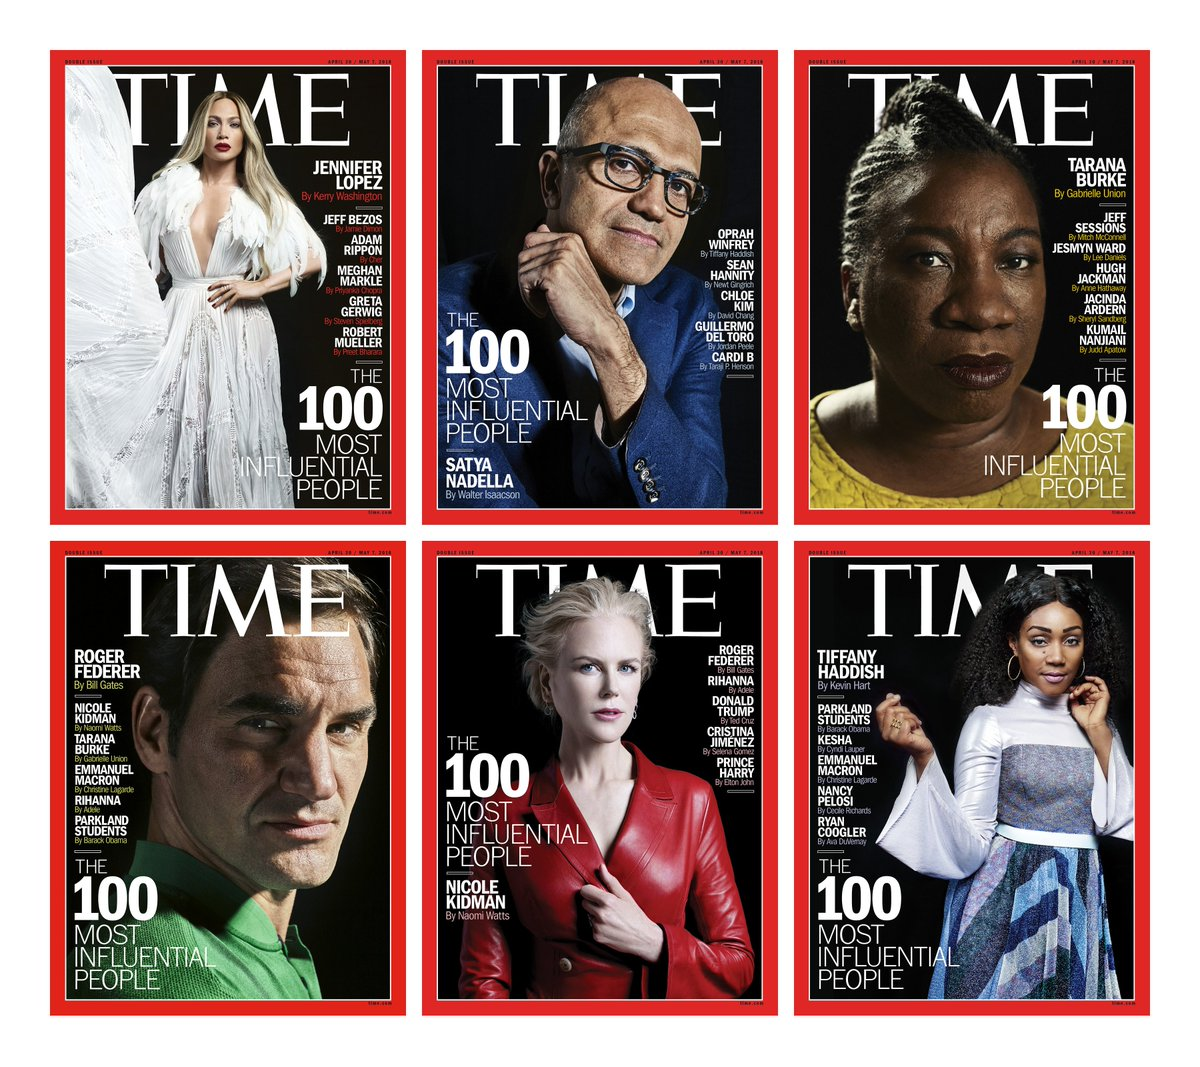 #TIME100